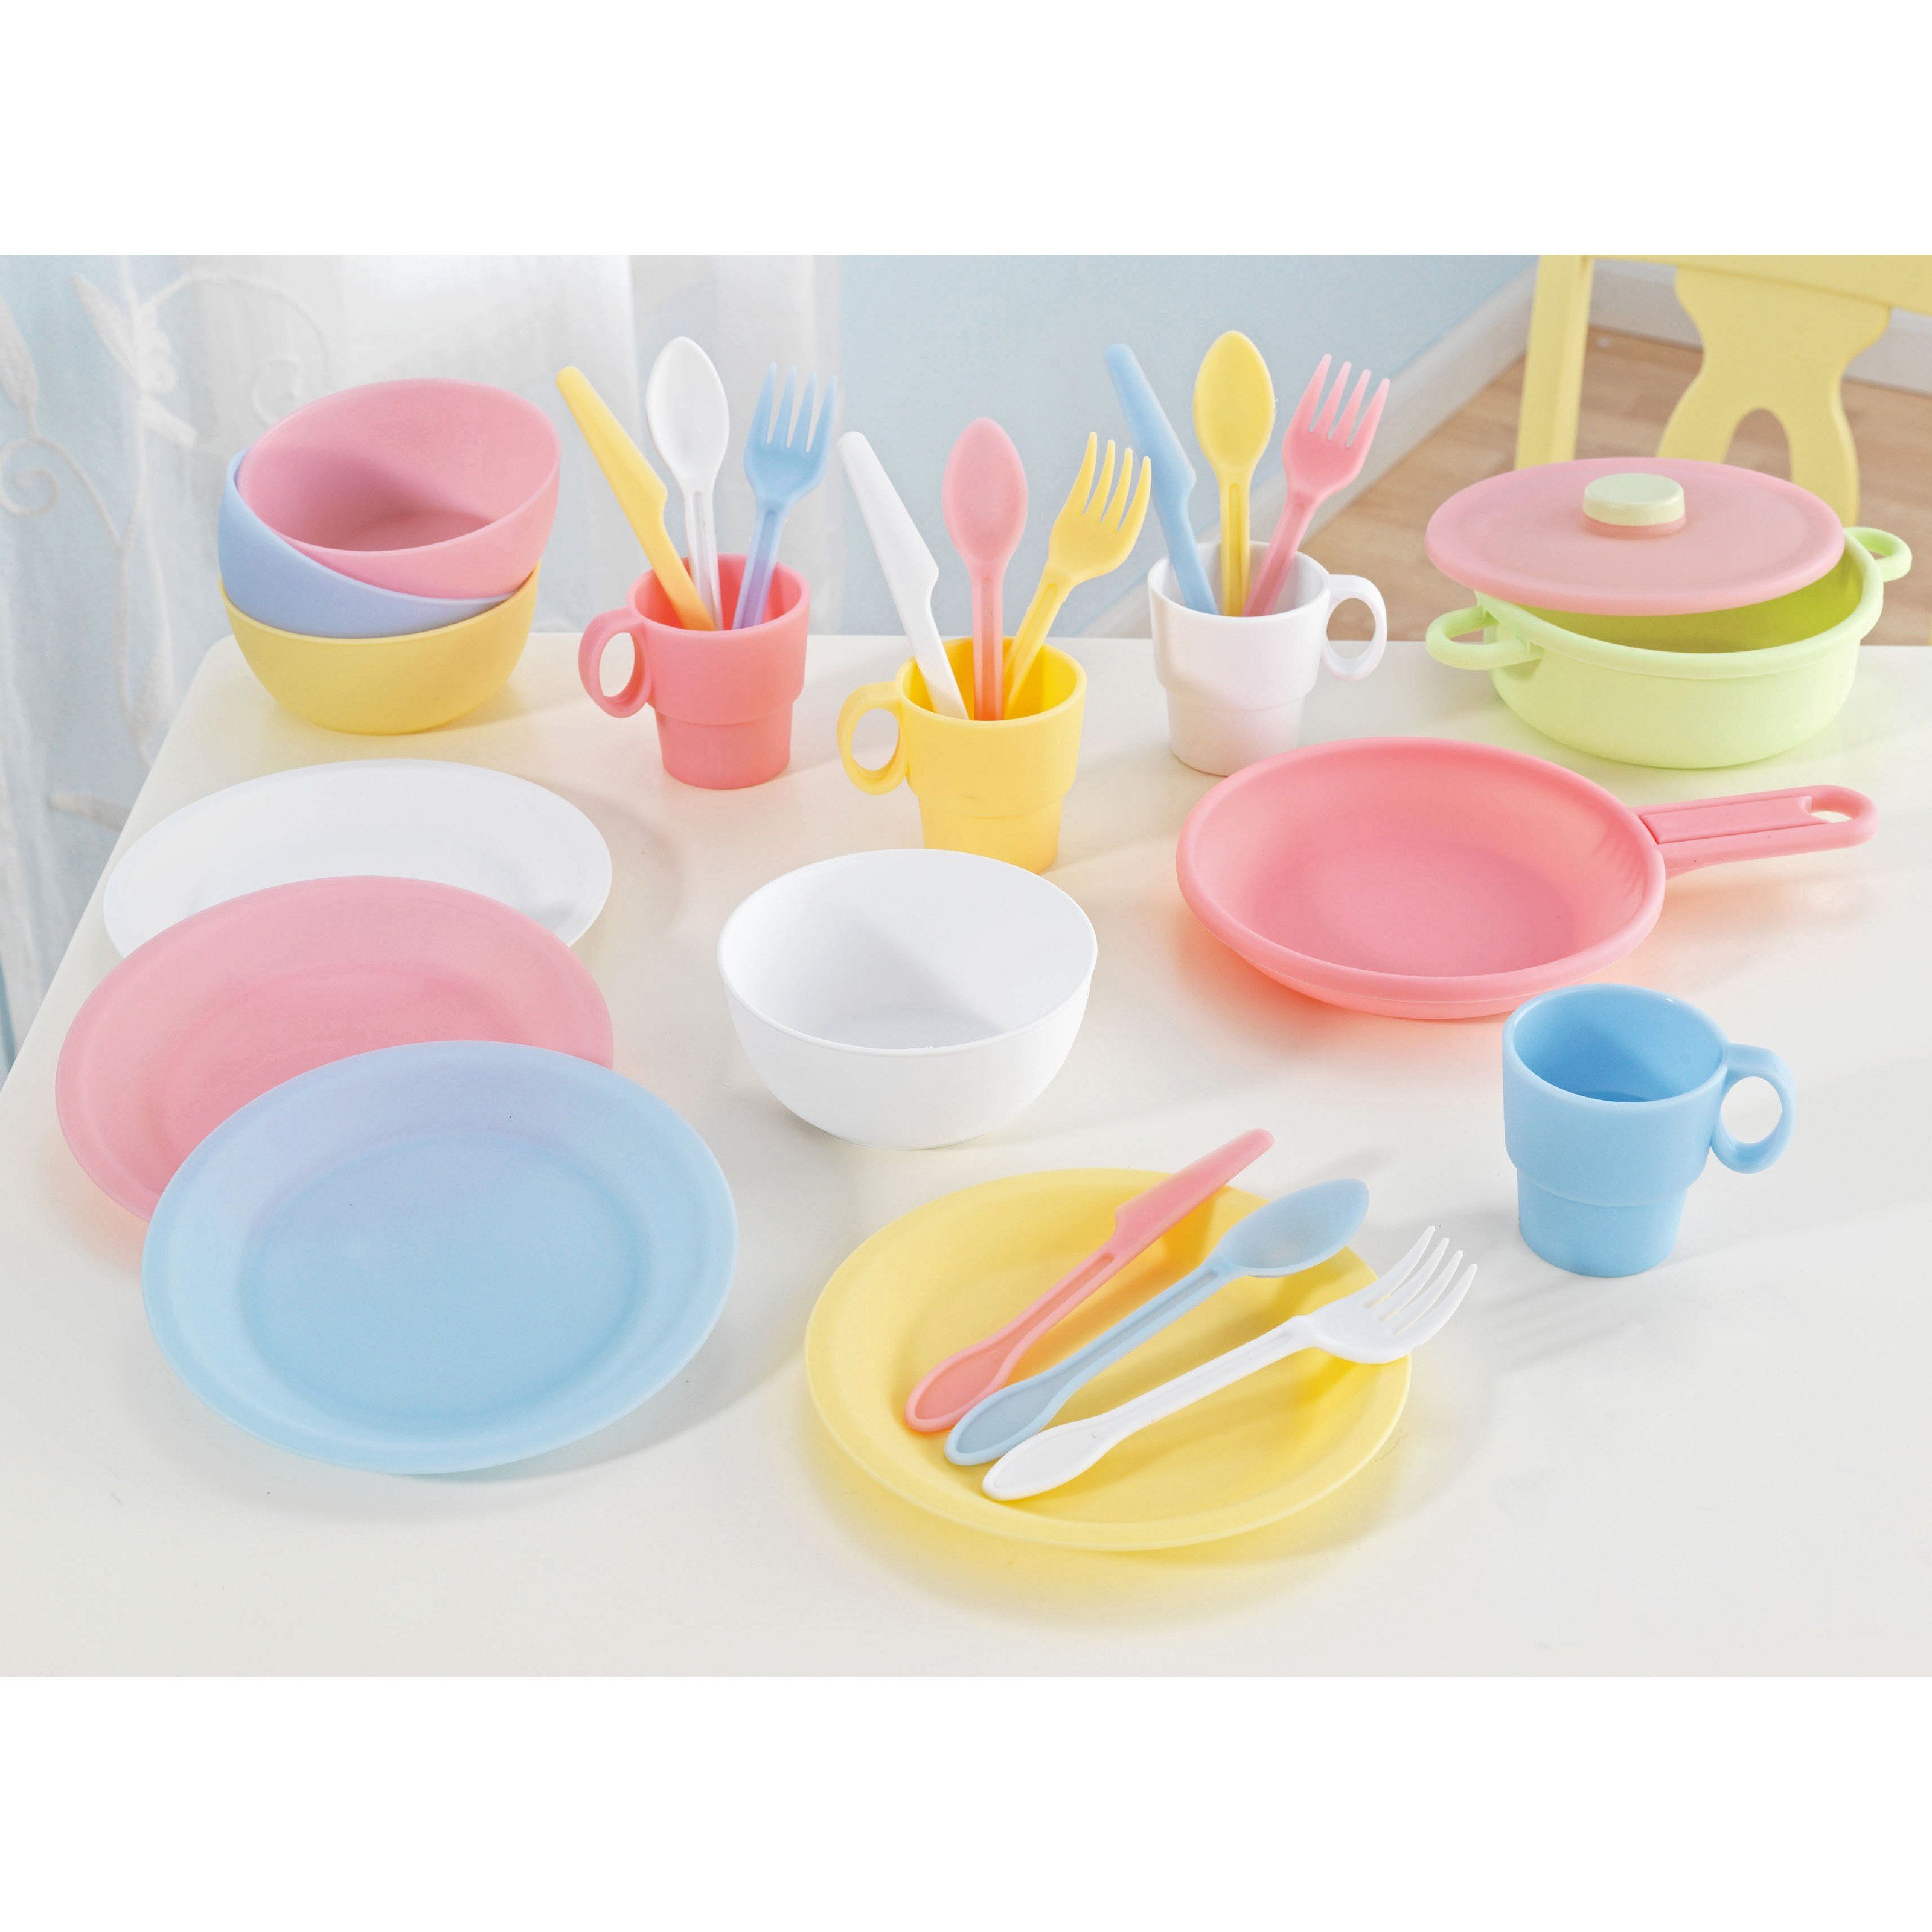 KidKraft 27-piece Kitchen Play Set, Pastel